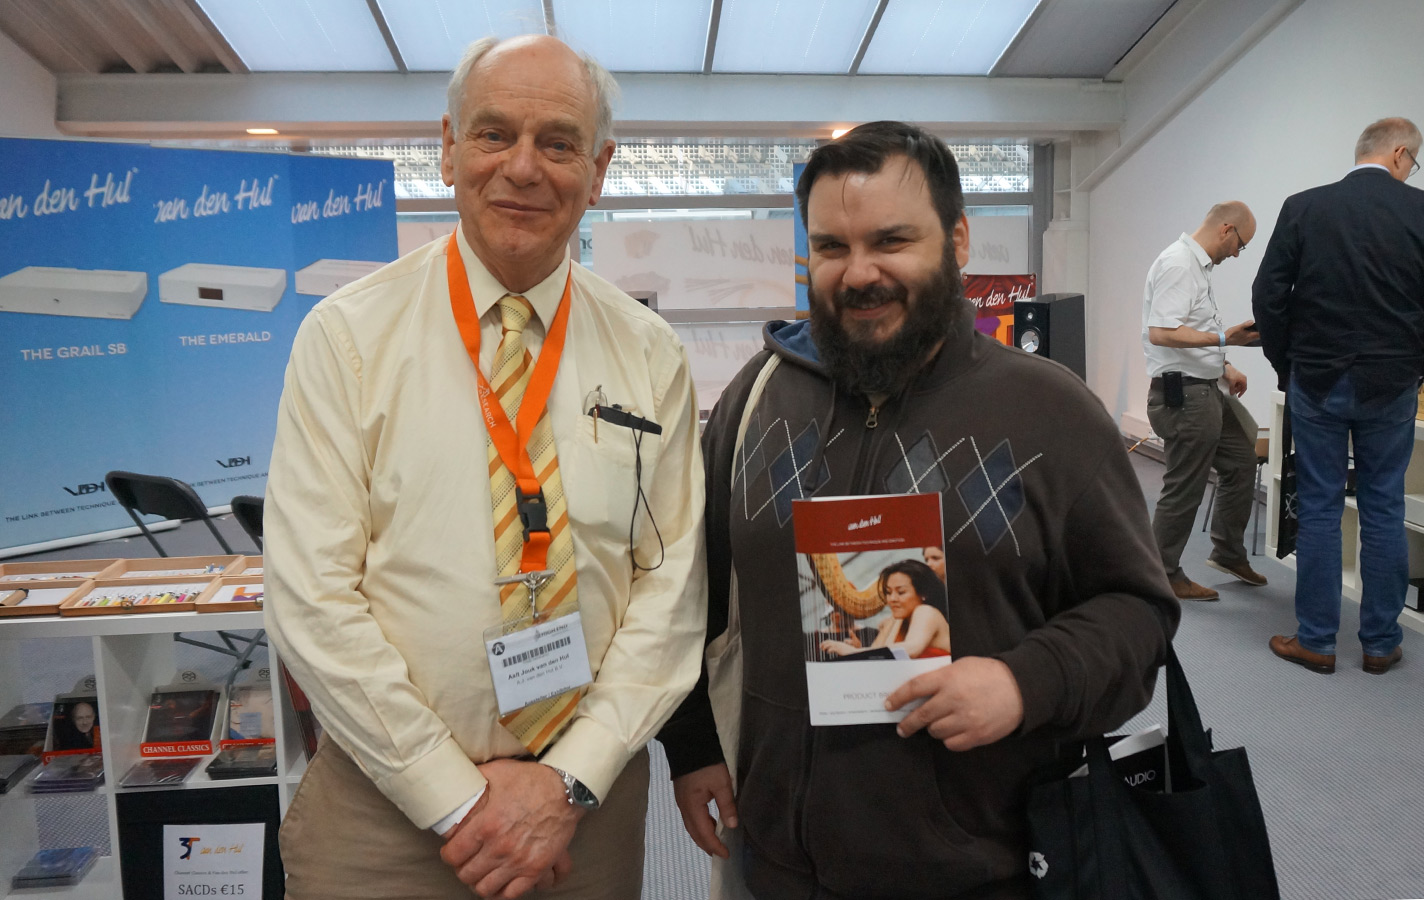 Mr. Van den Hul and Way Cables creator Nune Popovic at the High End Show in Munich 2015